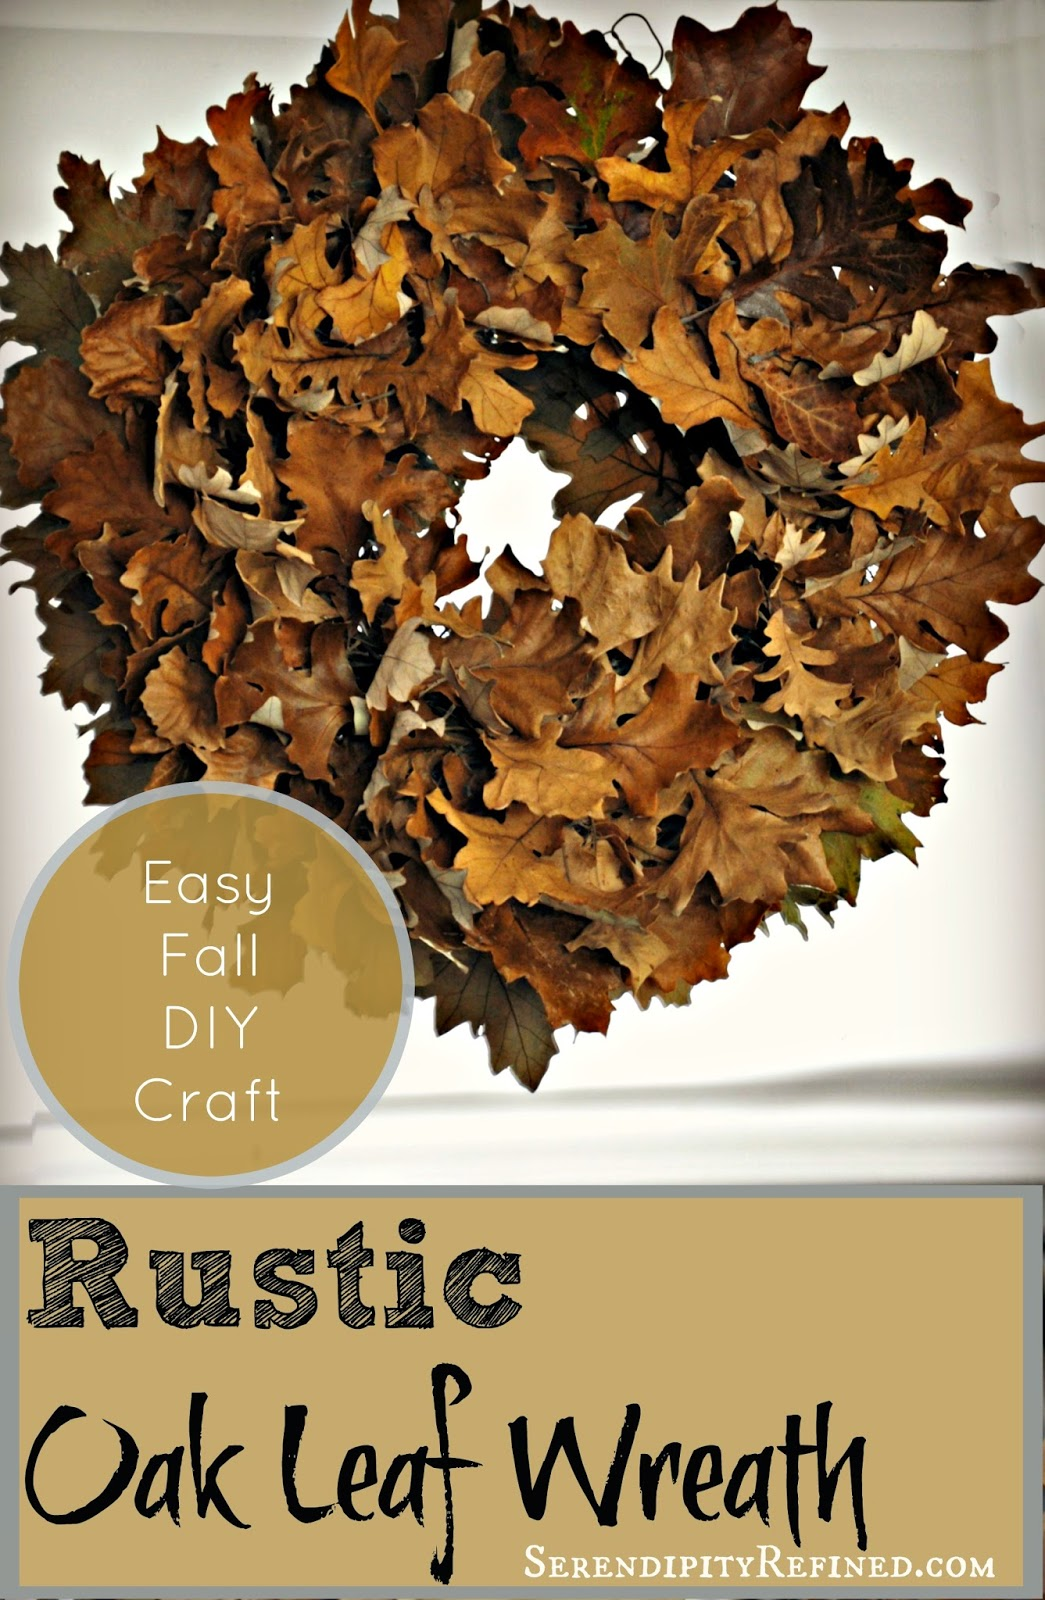 Easy Fall Kids Crafts That Anyone Can Make: Serendipity Refined Blog: Easy Fall DIY Craft: Rustic Oak